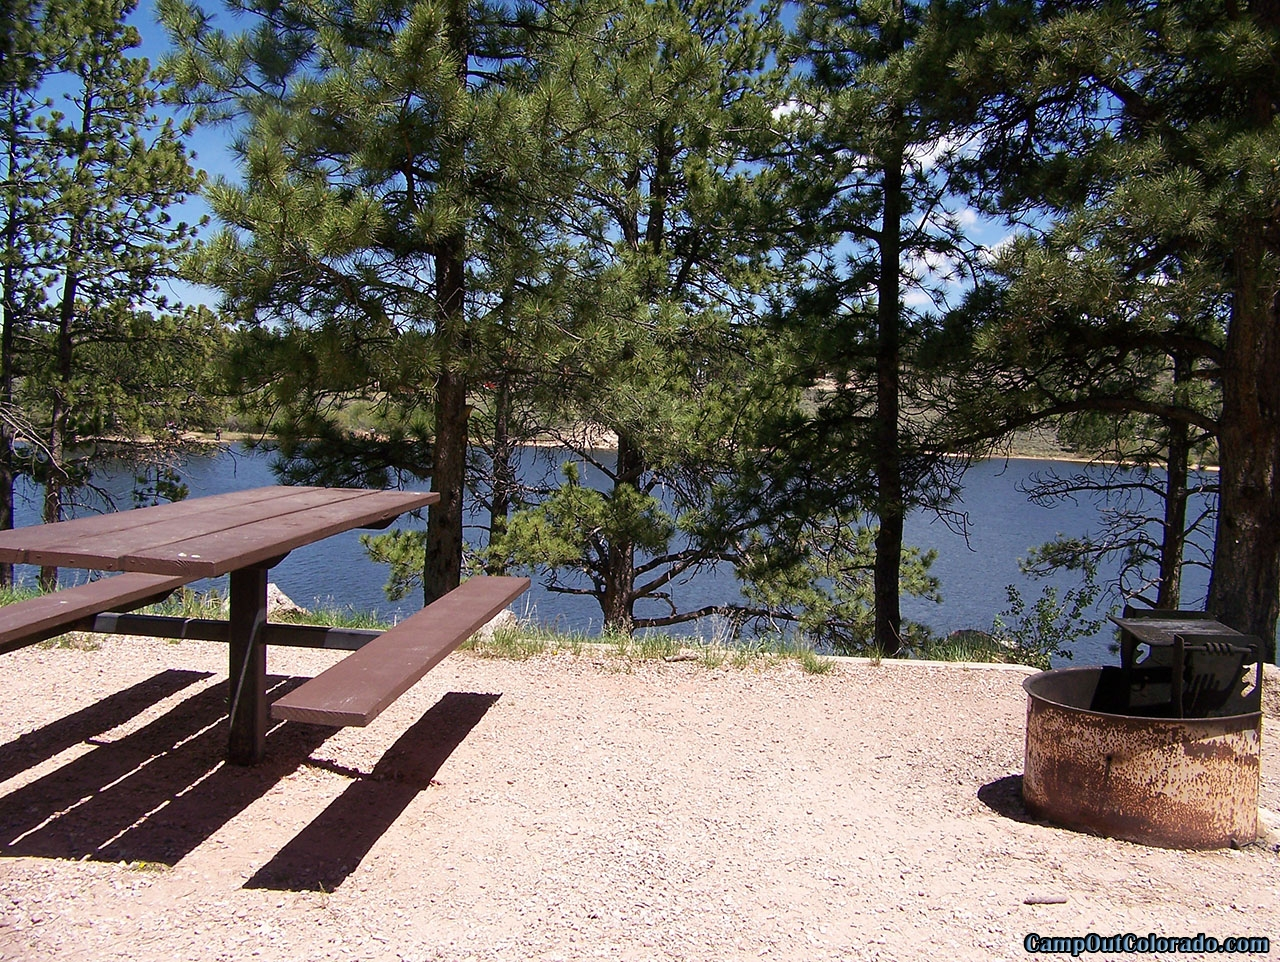 campoutcolorado-west-lake-tight-camp-site